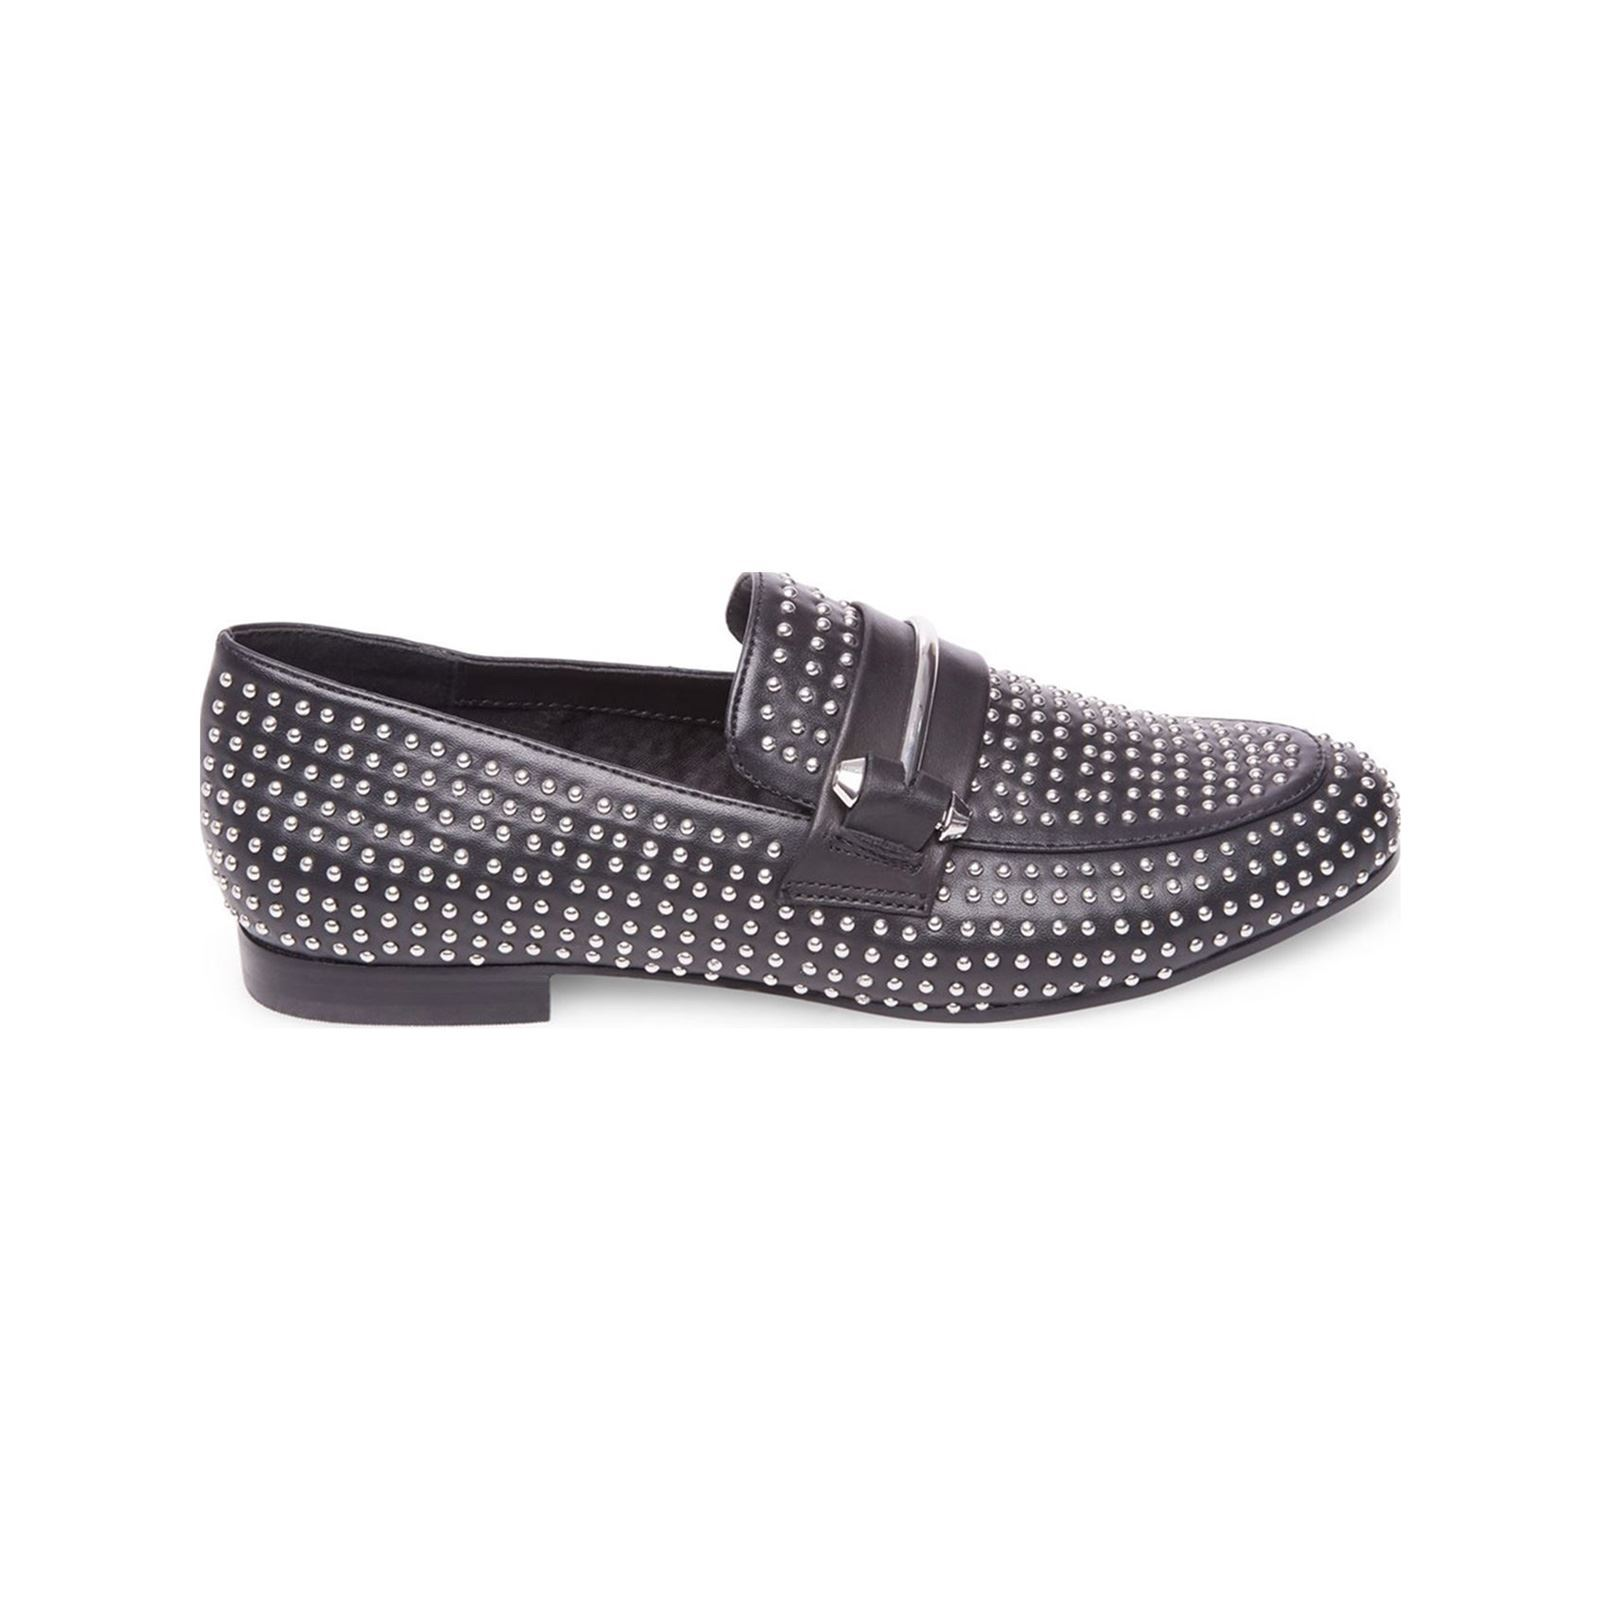 Steve Madden Kast - Mocassins en cuir - noir  Clous all over - application métallique sur le dessus